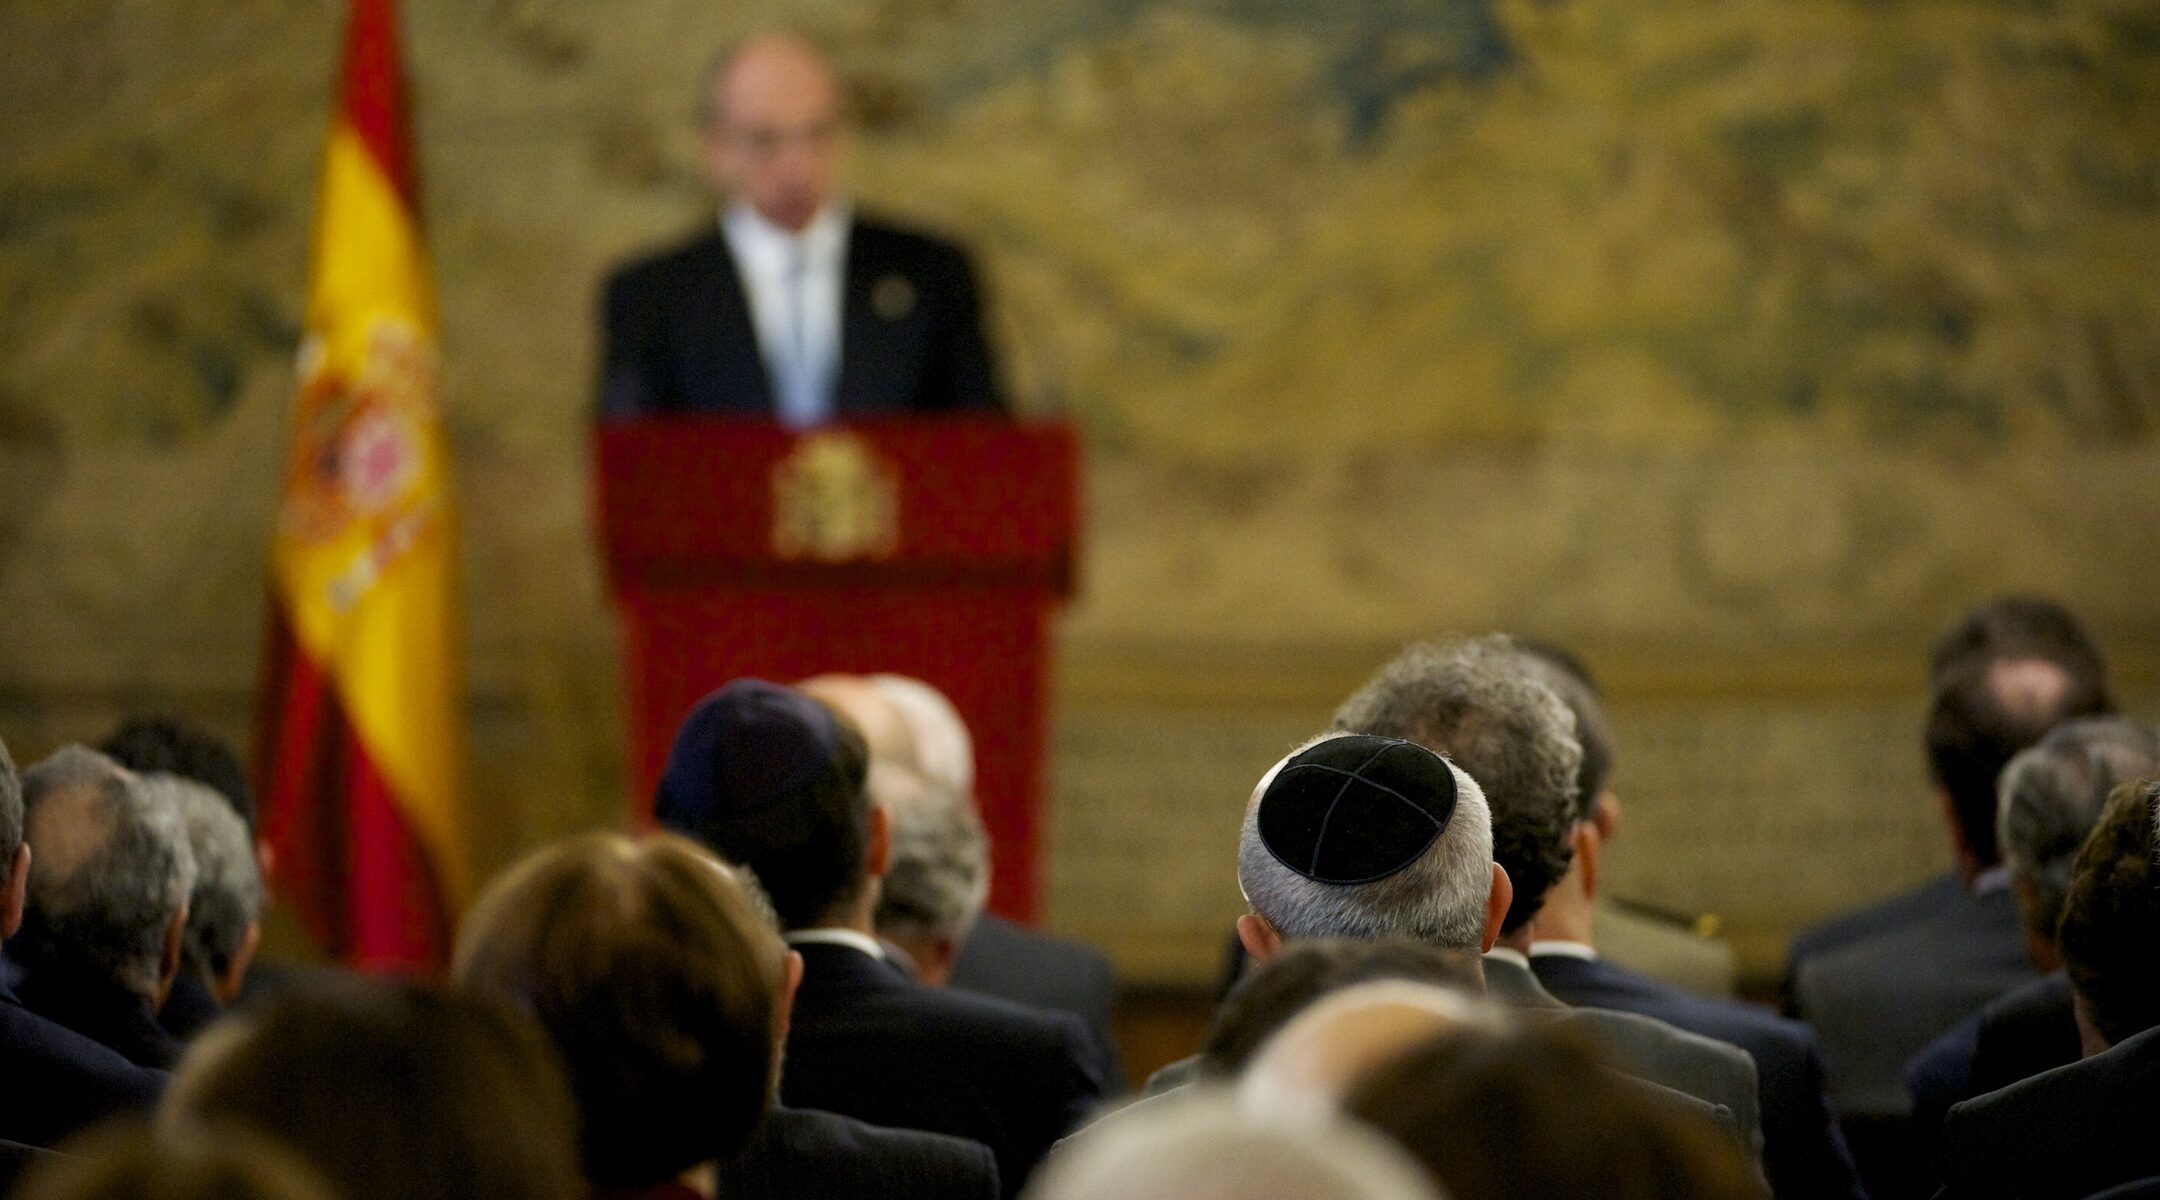 A ceremony at Spain's Royal Palace in Madrid marked the passing of a law granting citizenship to Sephardic Jews, Nov. 30, 2015. (Photo/JTA-Juan Naharro Gimenez-WireImage-Getty Images)